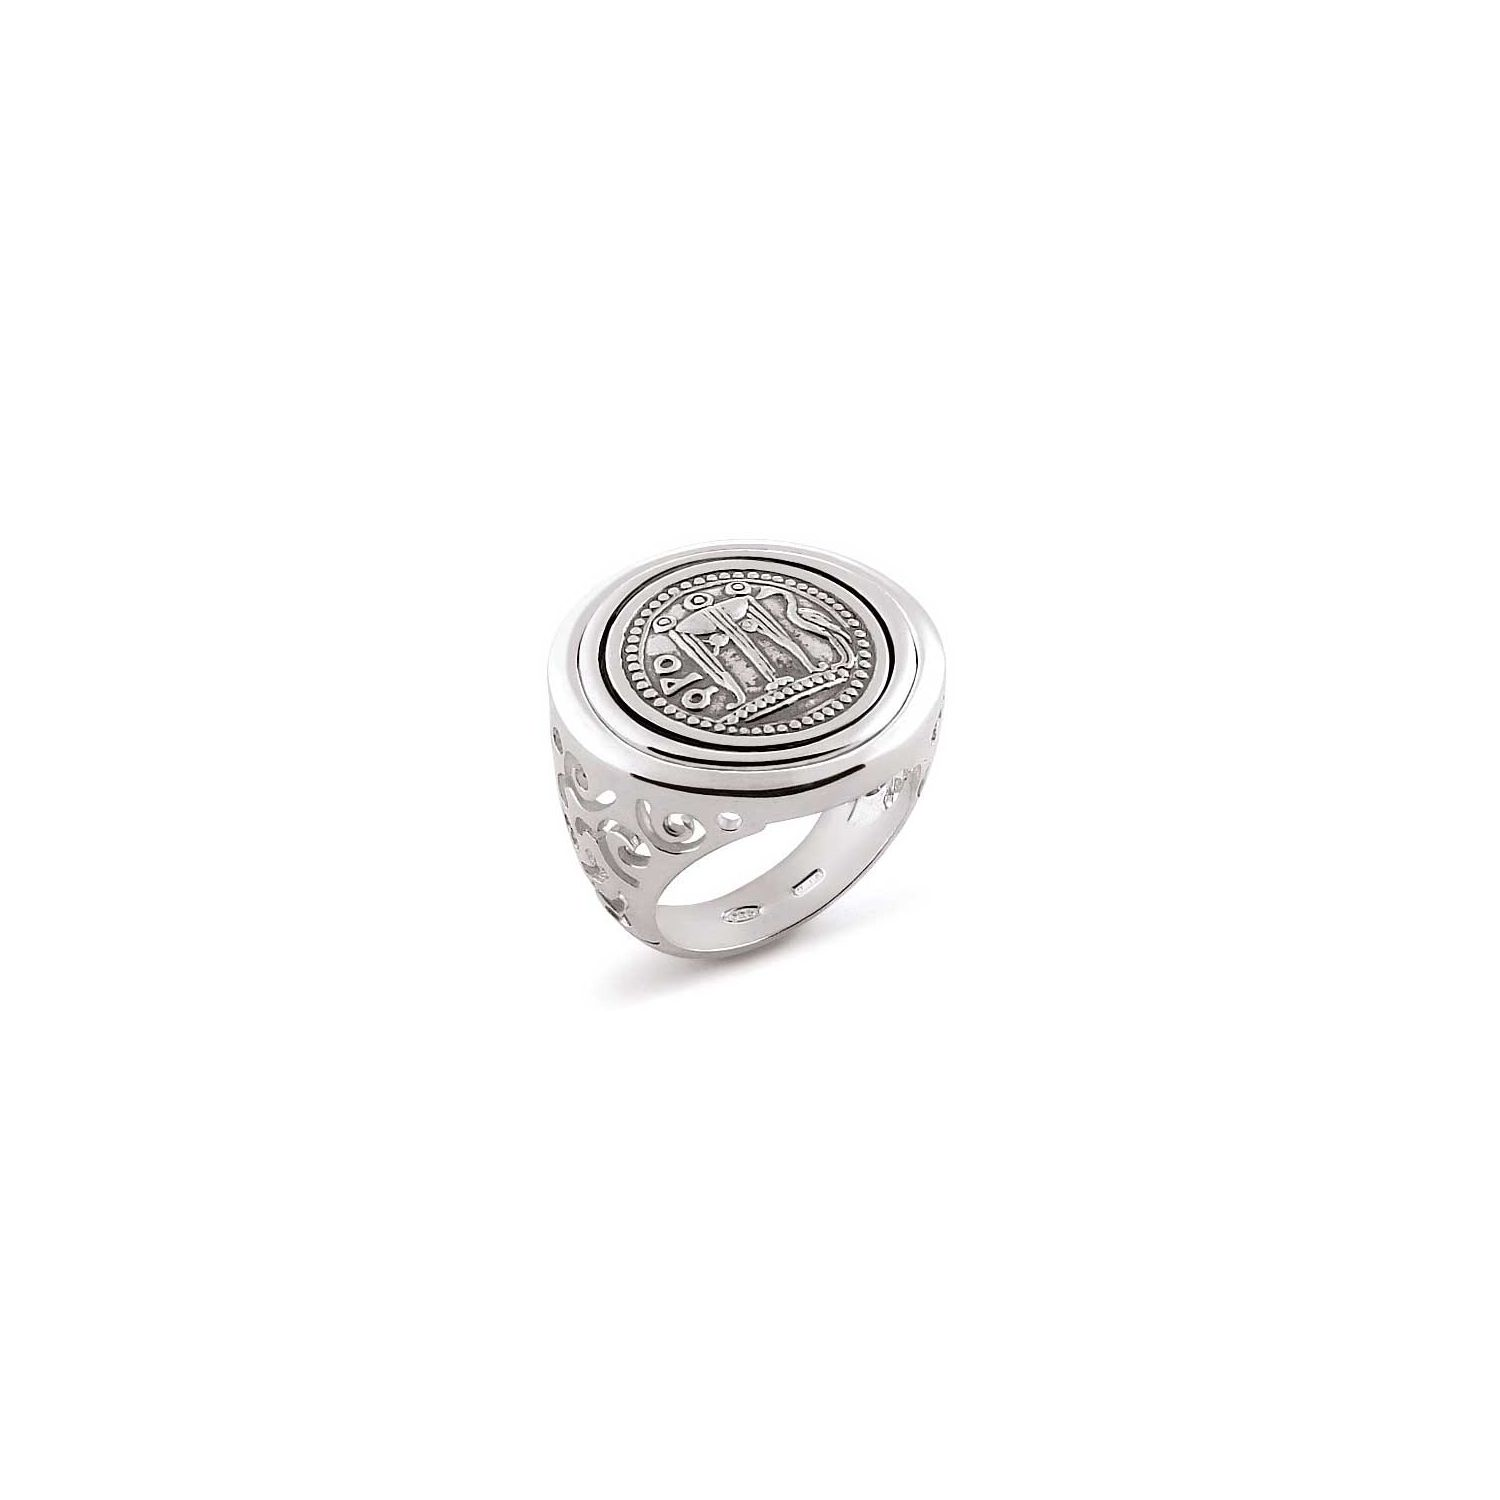 Ring with Coin (39670)